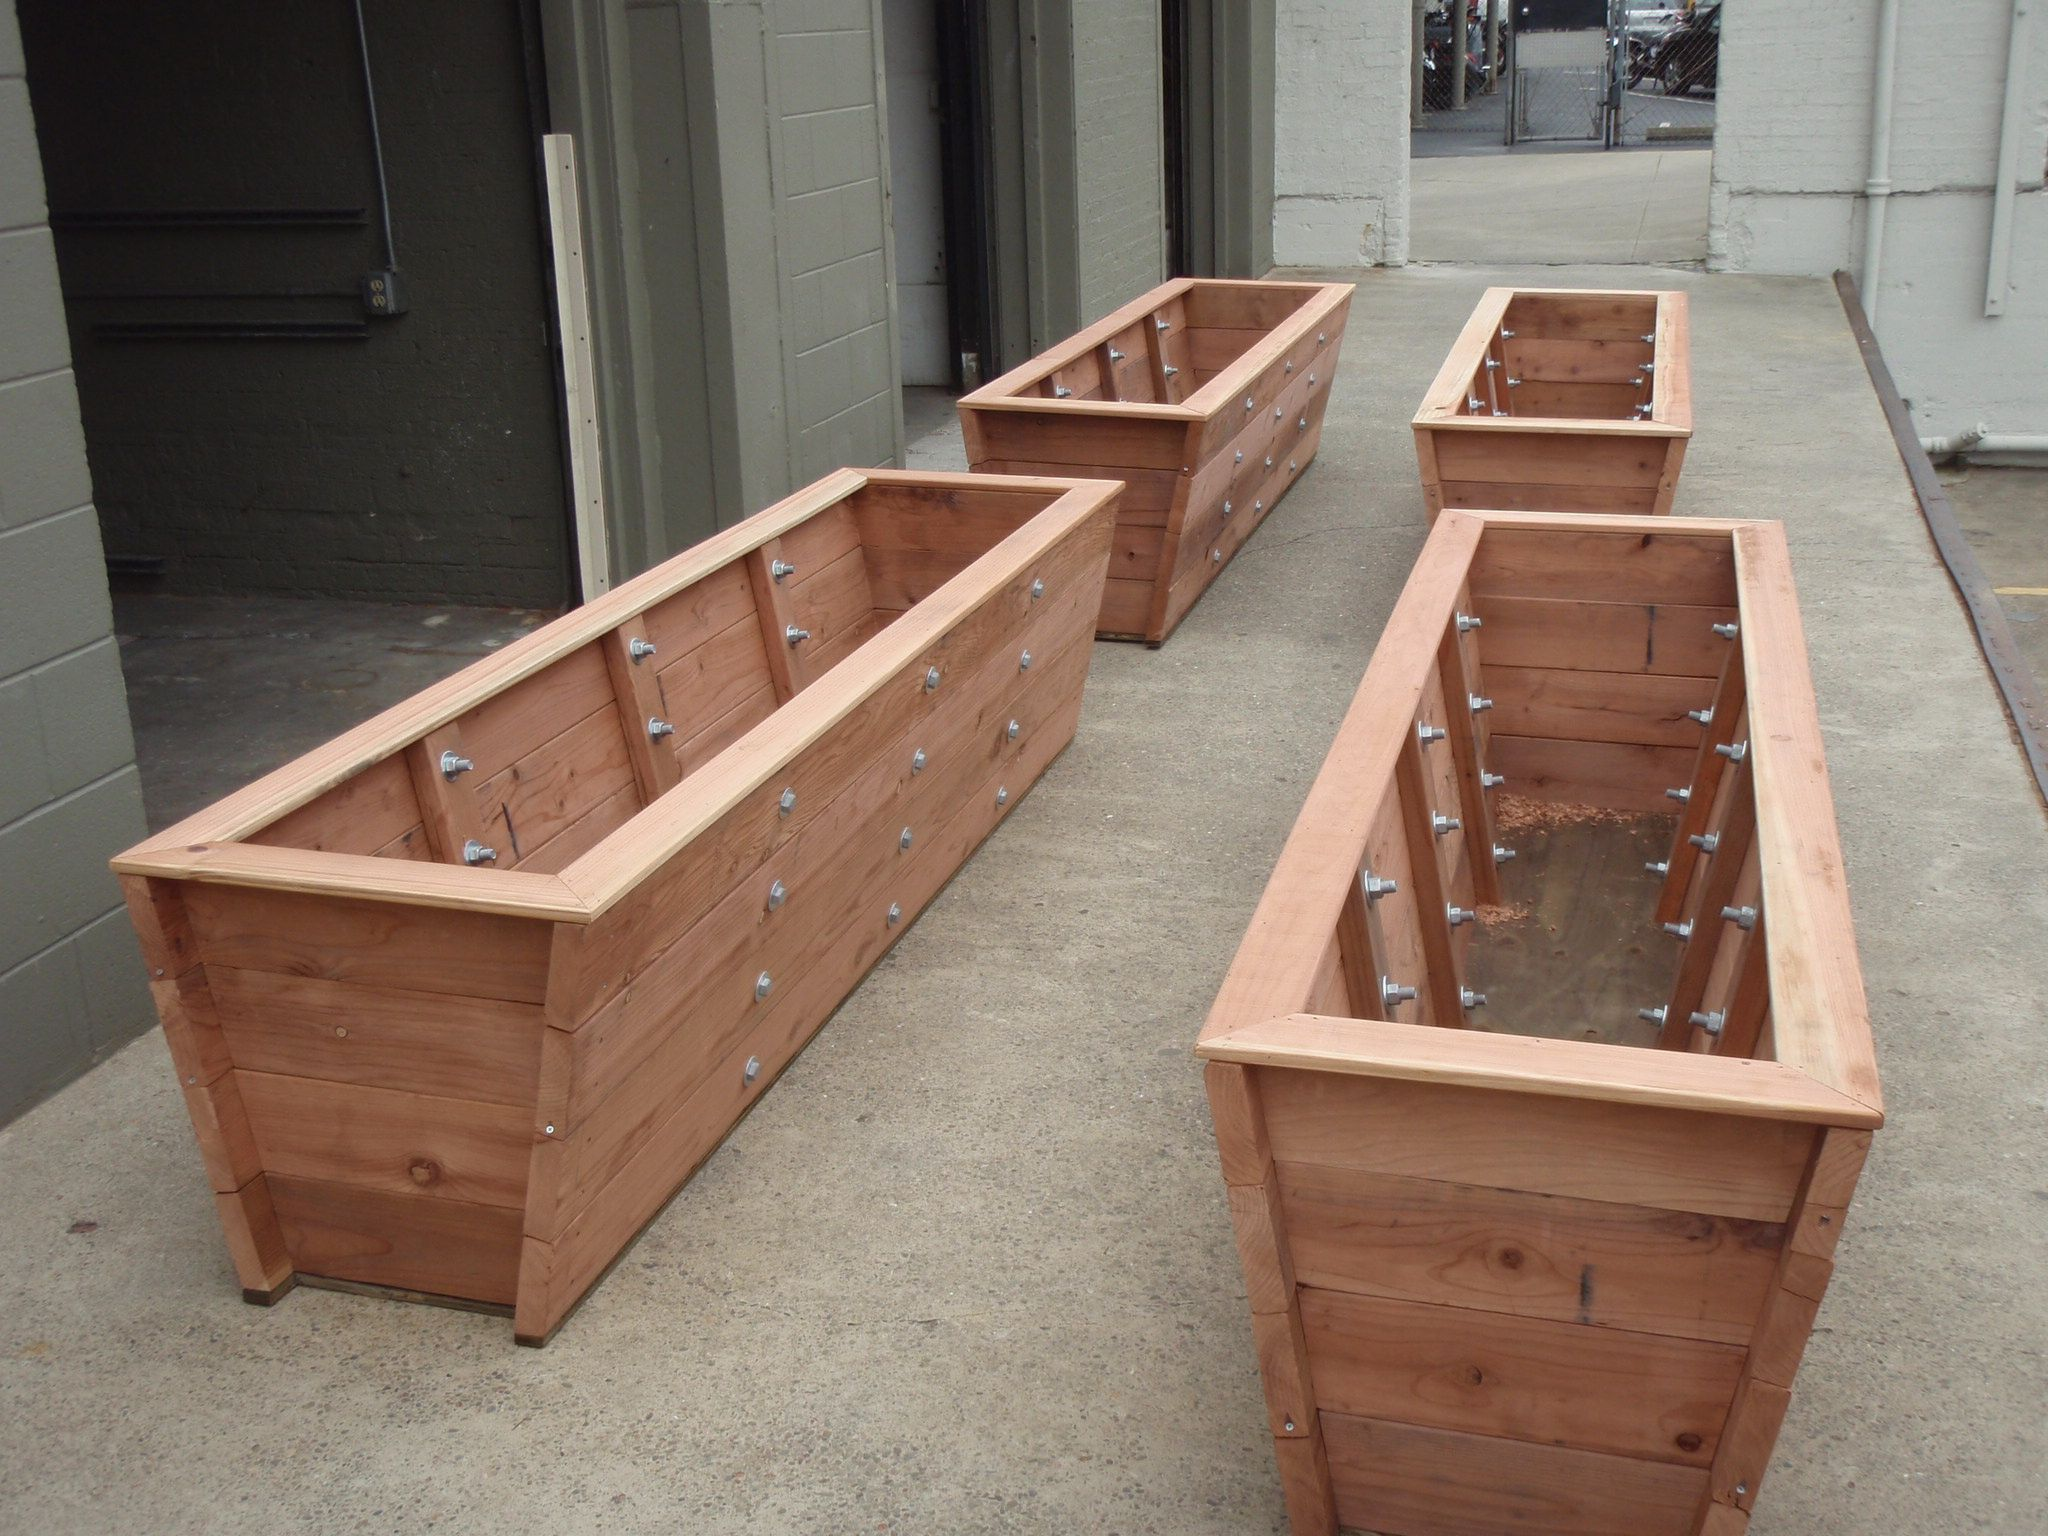 Long wood planter boxes 6 of them Outdoor Decor Pinterest